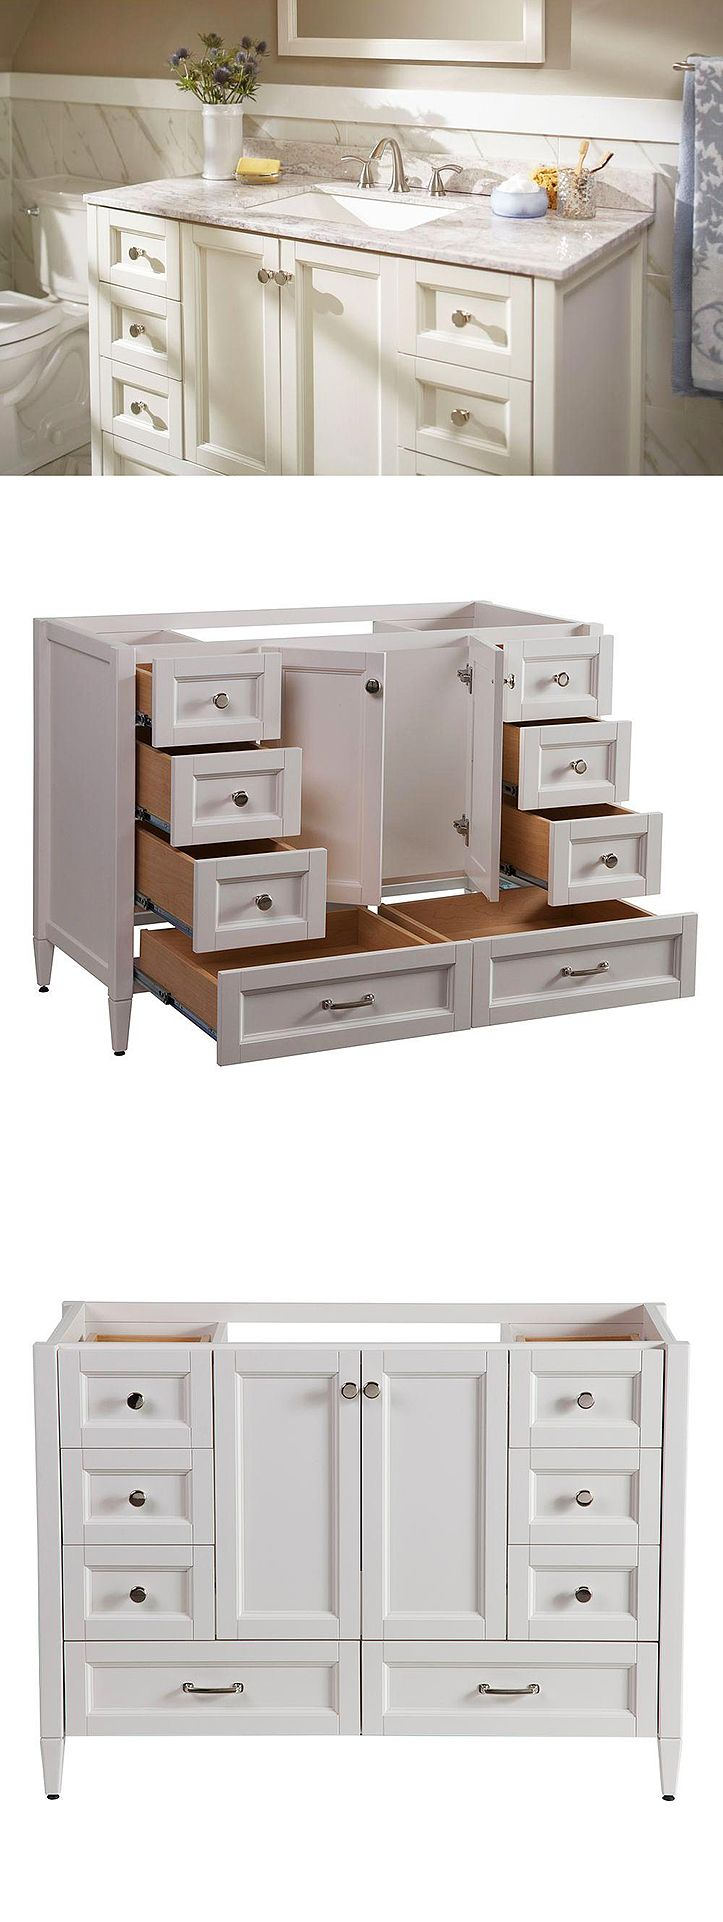 The Art Gallery Home Decorators Collection Claxby in W Vanity Cabinet Only in Cream Home Depot Bathroom